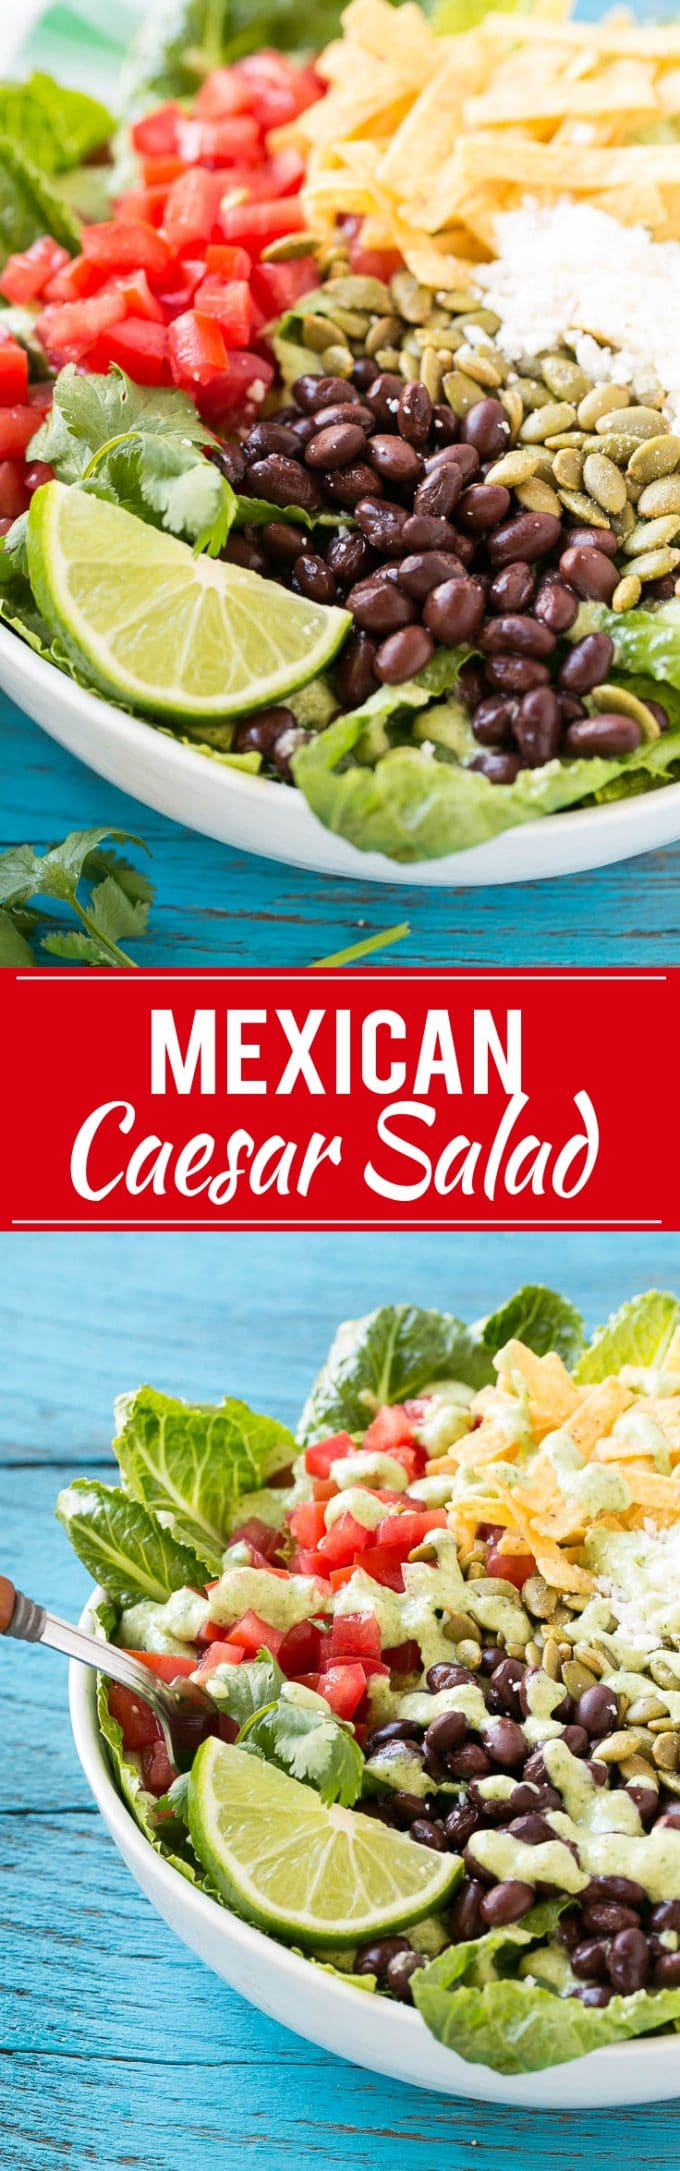 Mexican Caesar Salad Recipe | Best Mexican Caesar Salad | Cilantro Caesar Salad | Caesar Salad With Cilantro Dressing | Easy Mexican Caesar Salad